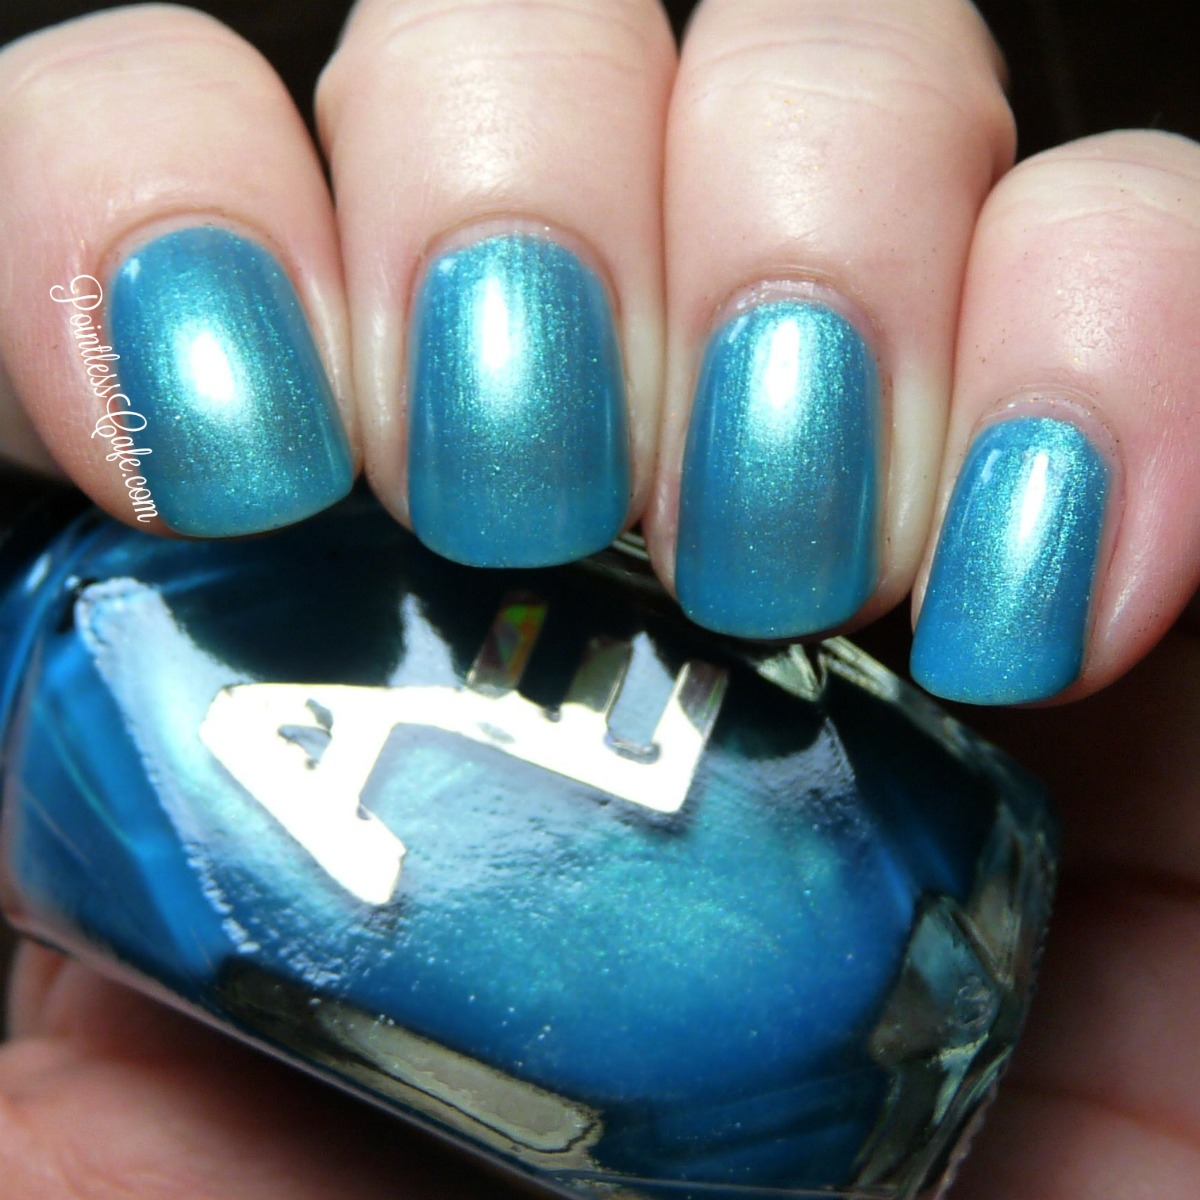 Alter Ego: Be a Pirate Collection - Swatches and Review